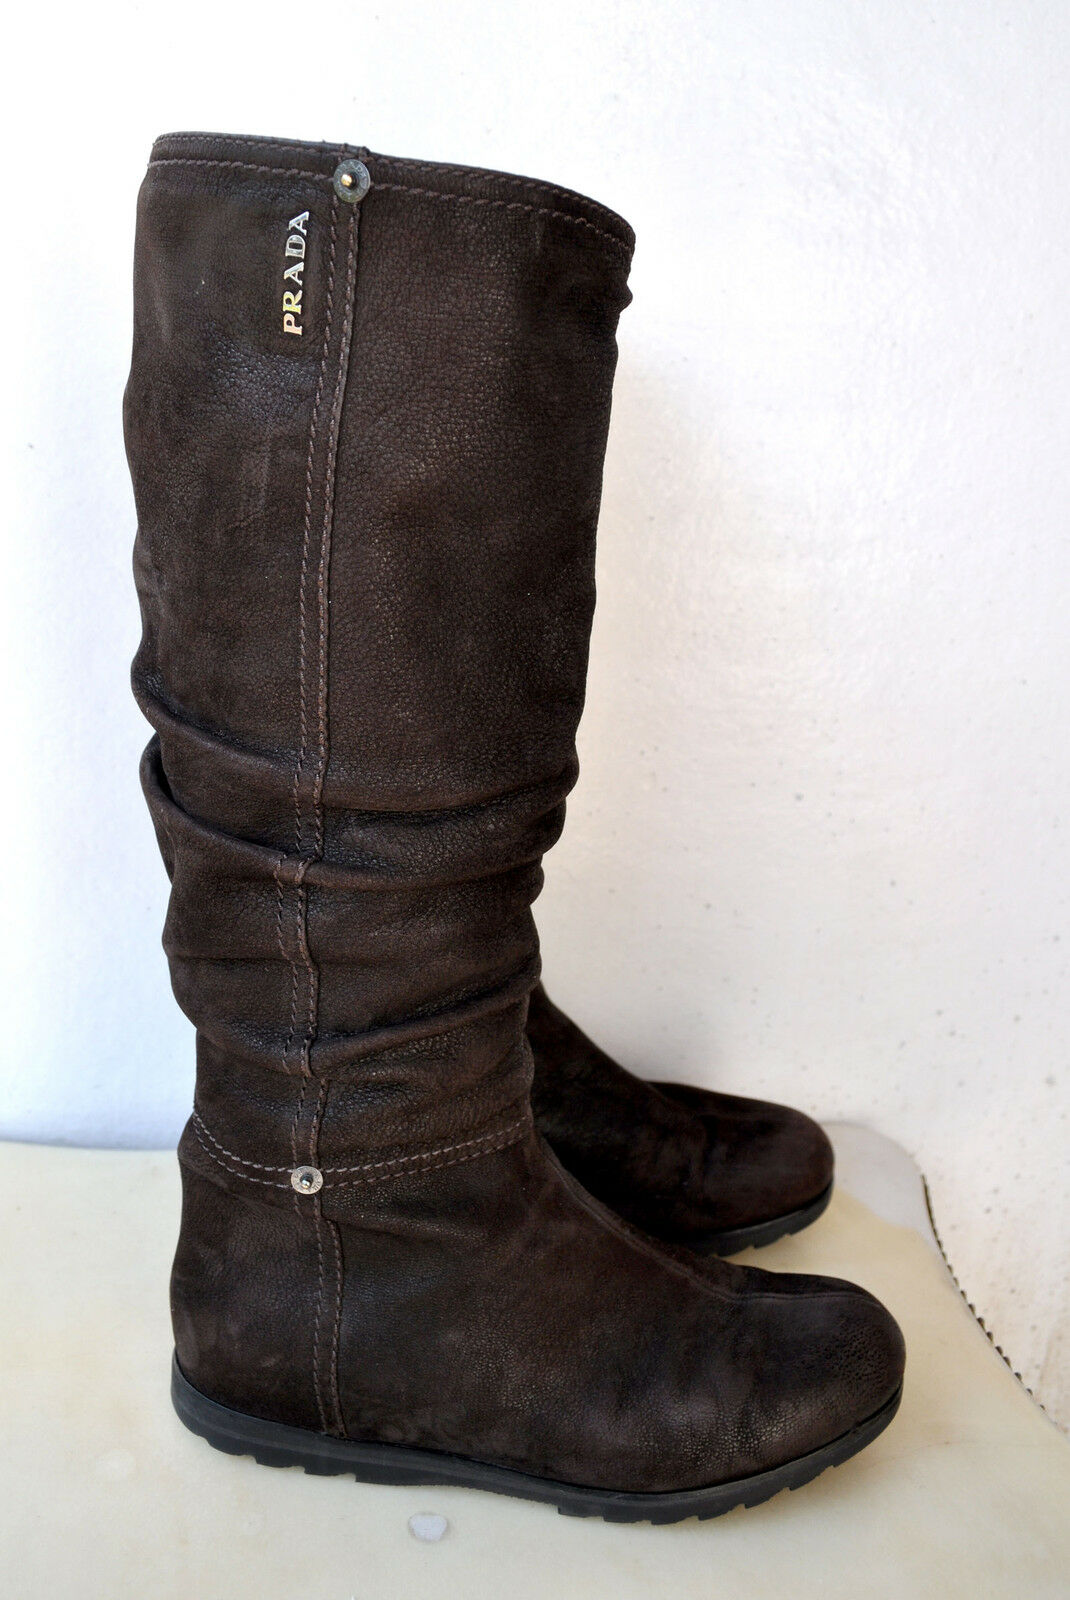 PRADA braun Premium Leather Knee-High Stiefel Sz 37 Authentic Rare Sold Out